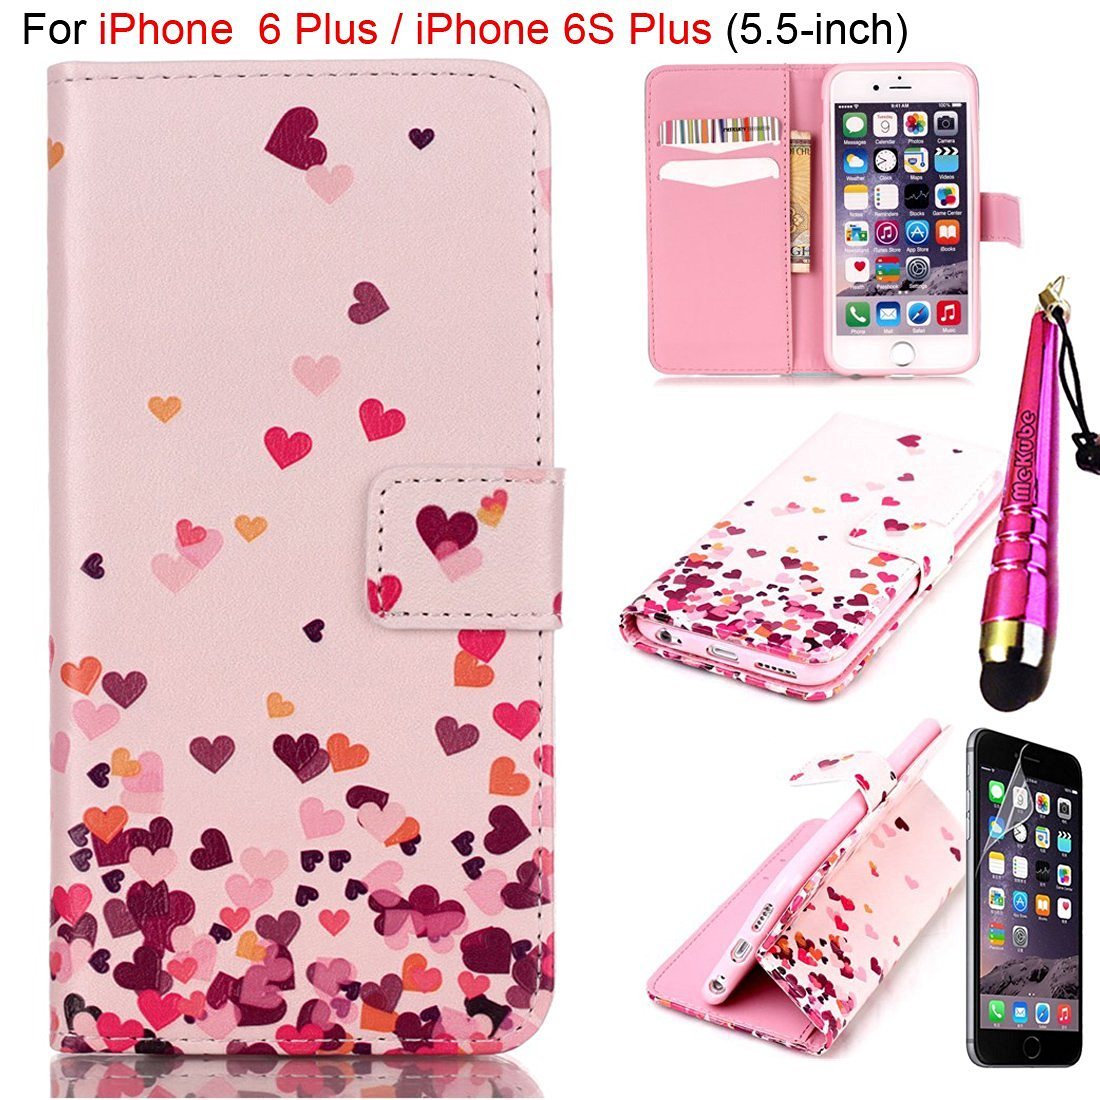 "iPhone 6 Plus Case, iPhone 6S Plus Case [5.5-inch], MeKube® Magnetic Flip Stand Card Holder Wallet PU Leather Case Pouch Cover W/ Stylus For iPhone 6 Plus, 6S Plus (5.5"") (Pink Love Hearts)"